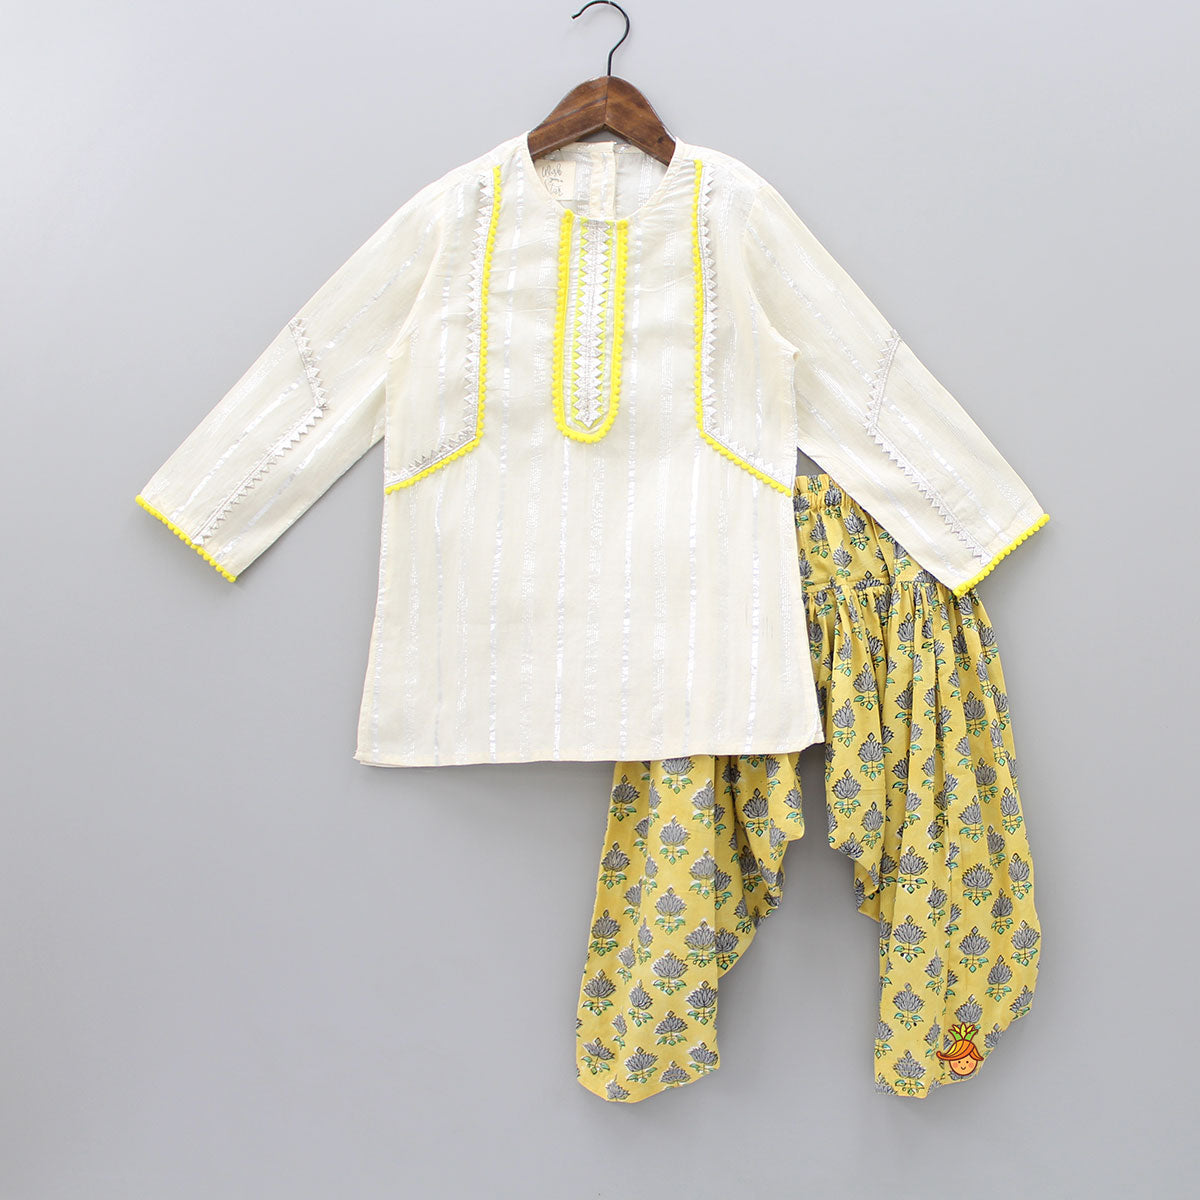 Lace Work Kurta And Floral Print Dhoti